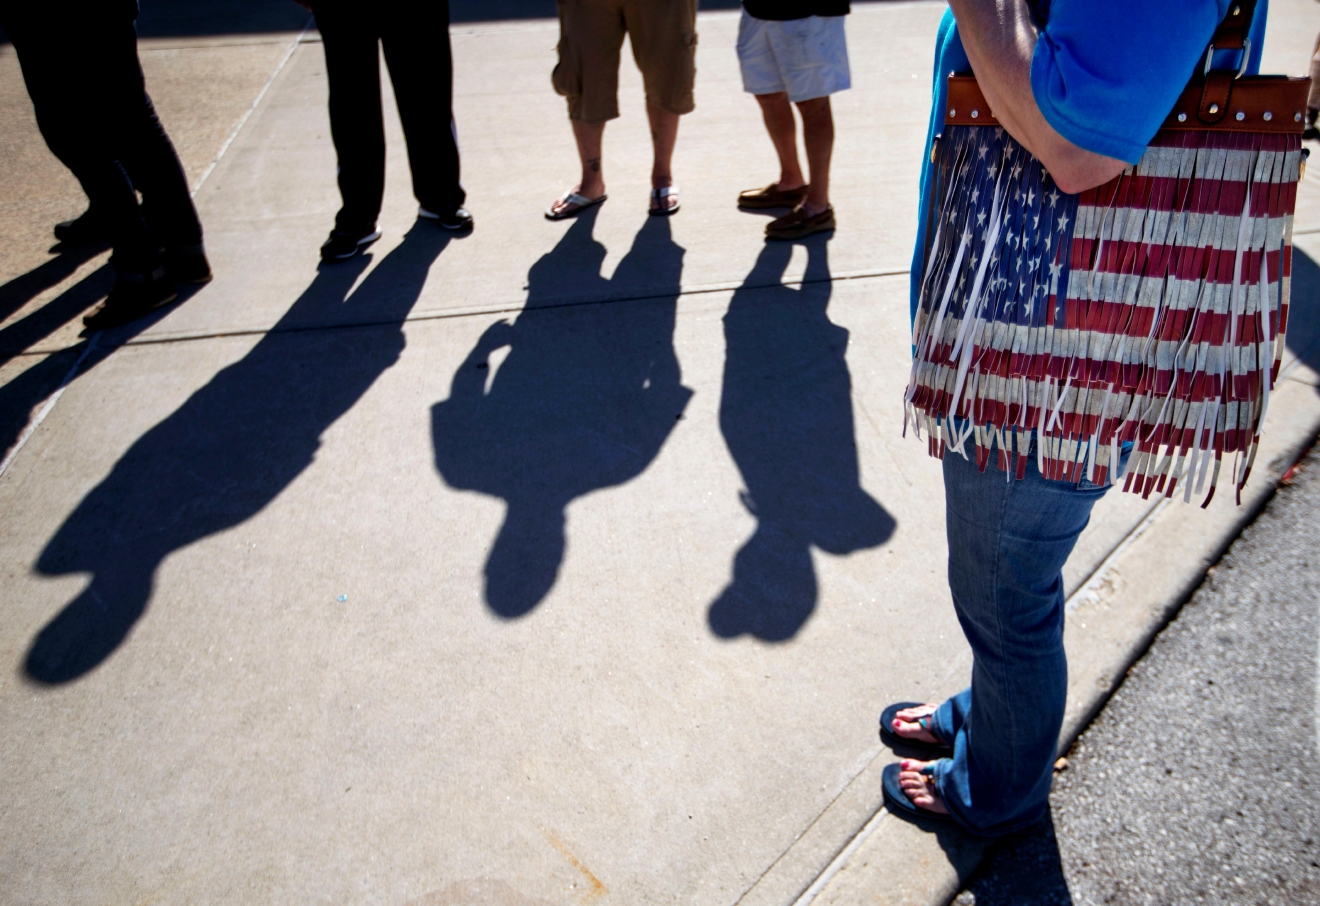 Stephanie Roby, right, of Louisville, stands with an American flag-themed bag while waiting in line for the ticket office to open for tickets for Muhammad Ali's Jenazah service at Freedom Hall Tuesday, June 7, 2016, in Louisville, Ky. The day before his star-studded funeral, members of Ali's Islamic faith will get their chance to say a traditional goodbye during a Jenazah, a traditional Muslim funeral. (AP Photo/David Goldman)